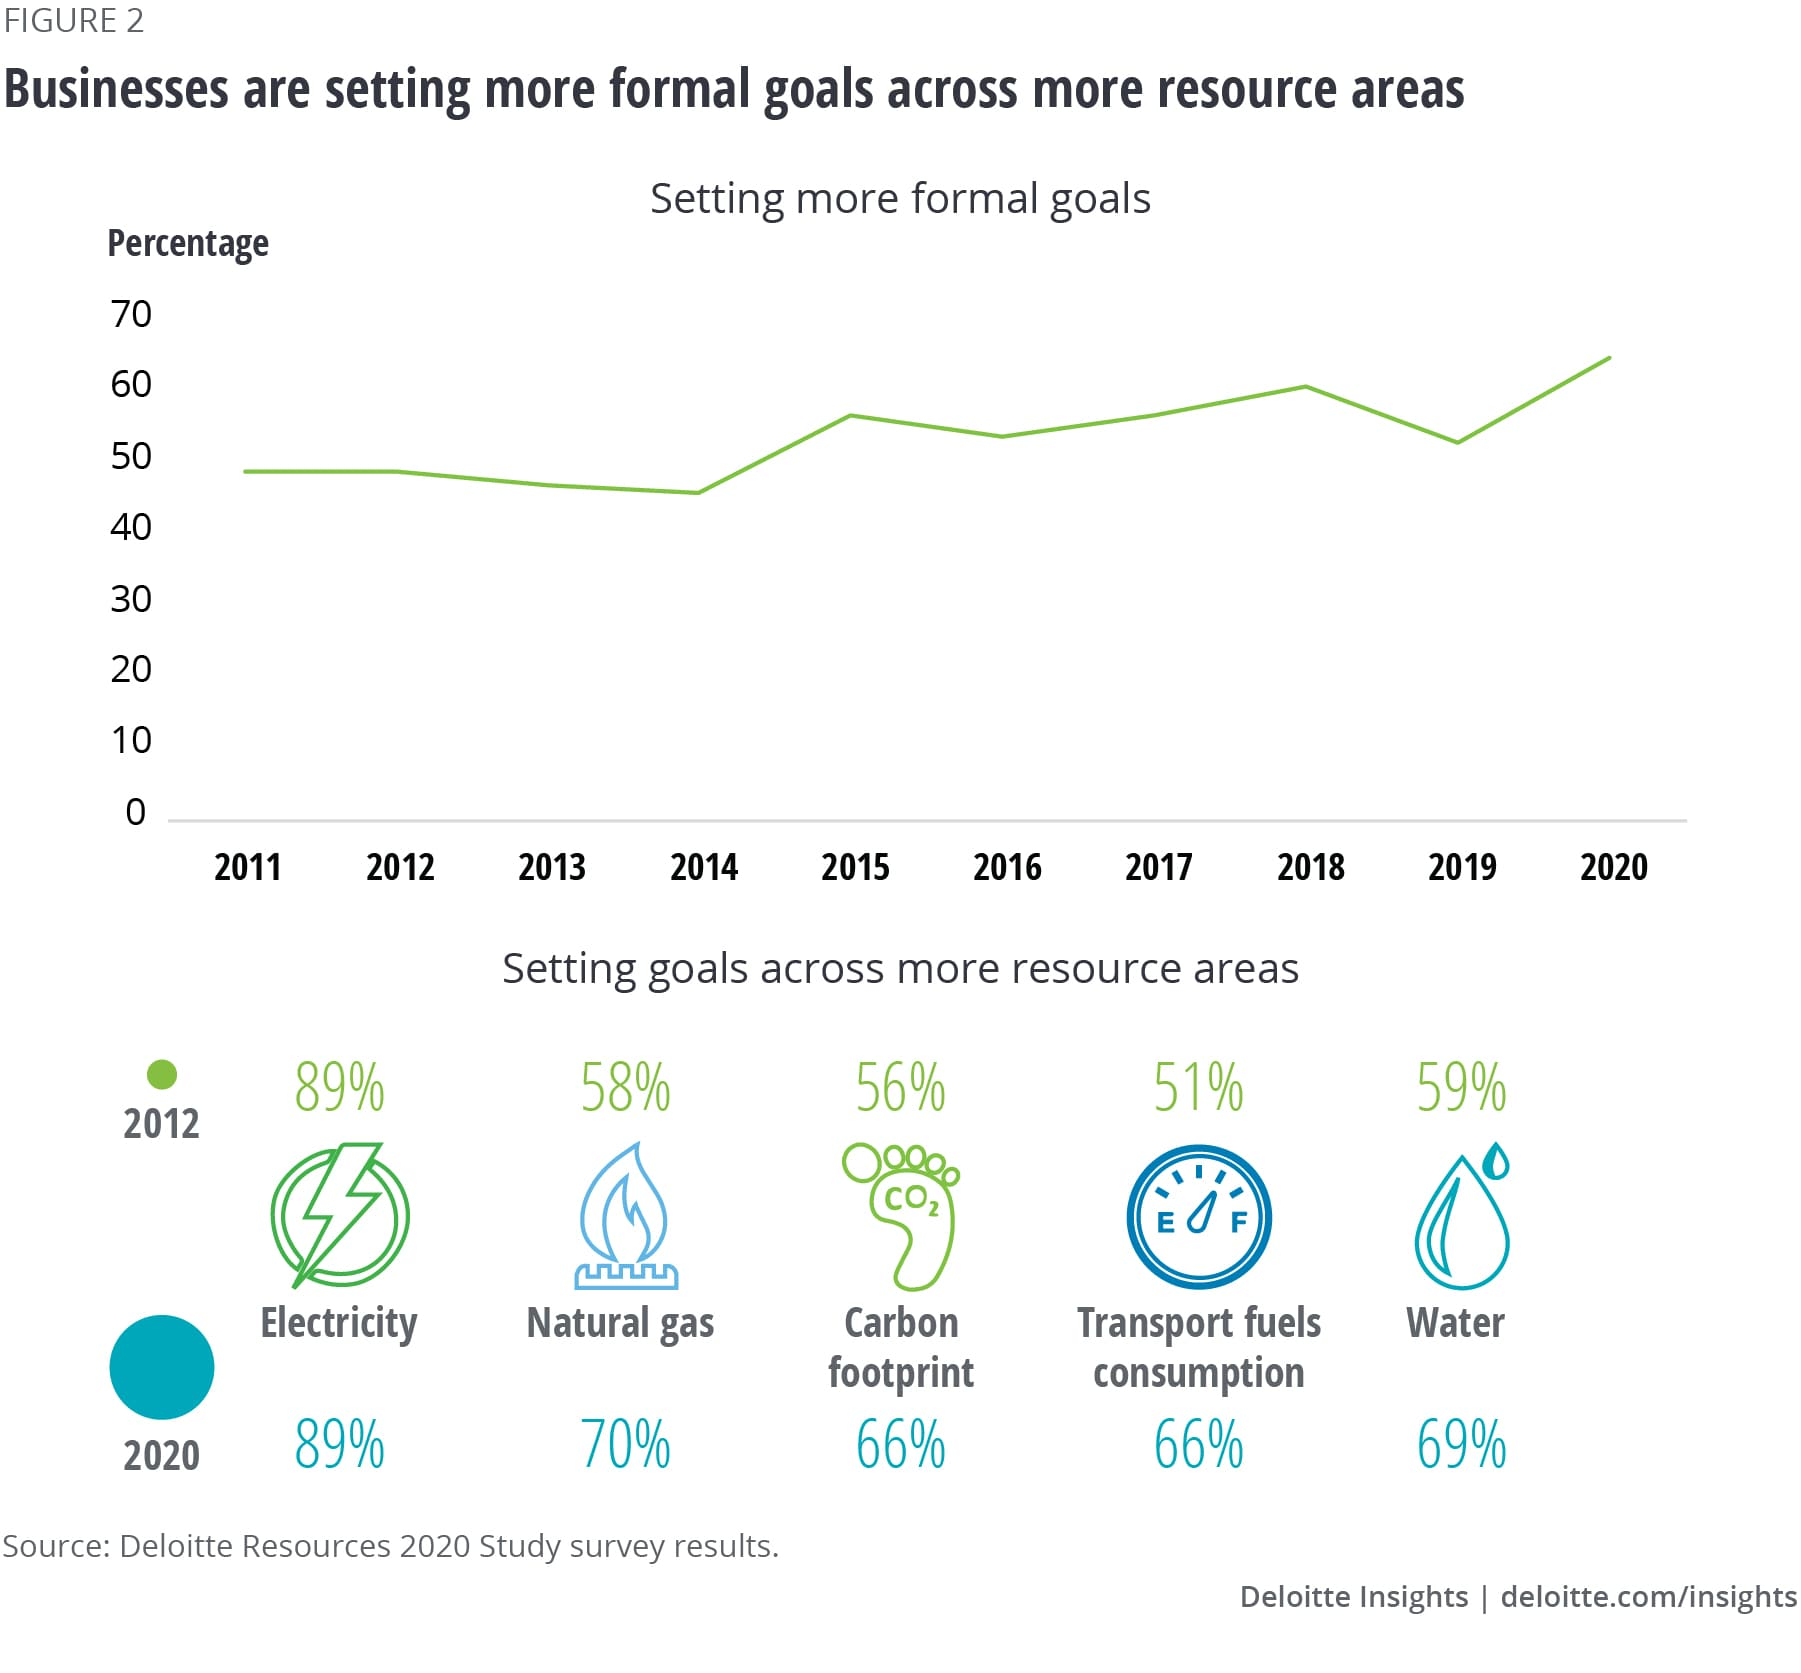 Businesses are setting more formal goals across more resource areas